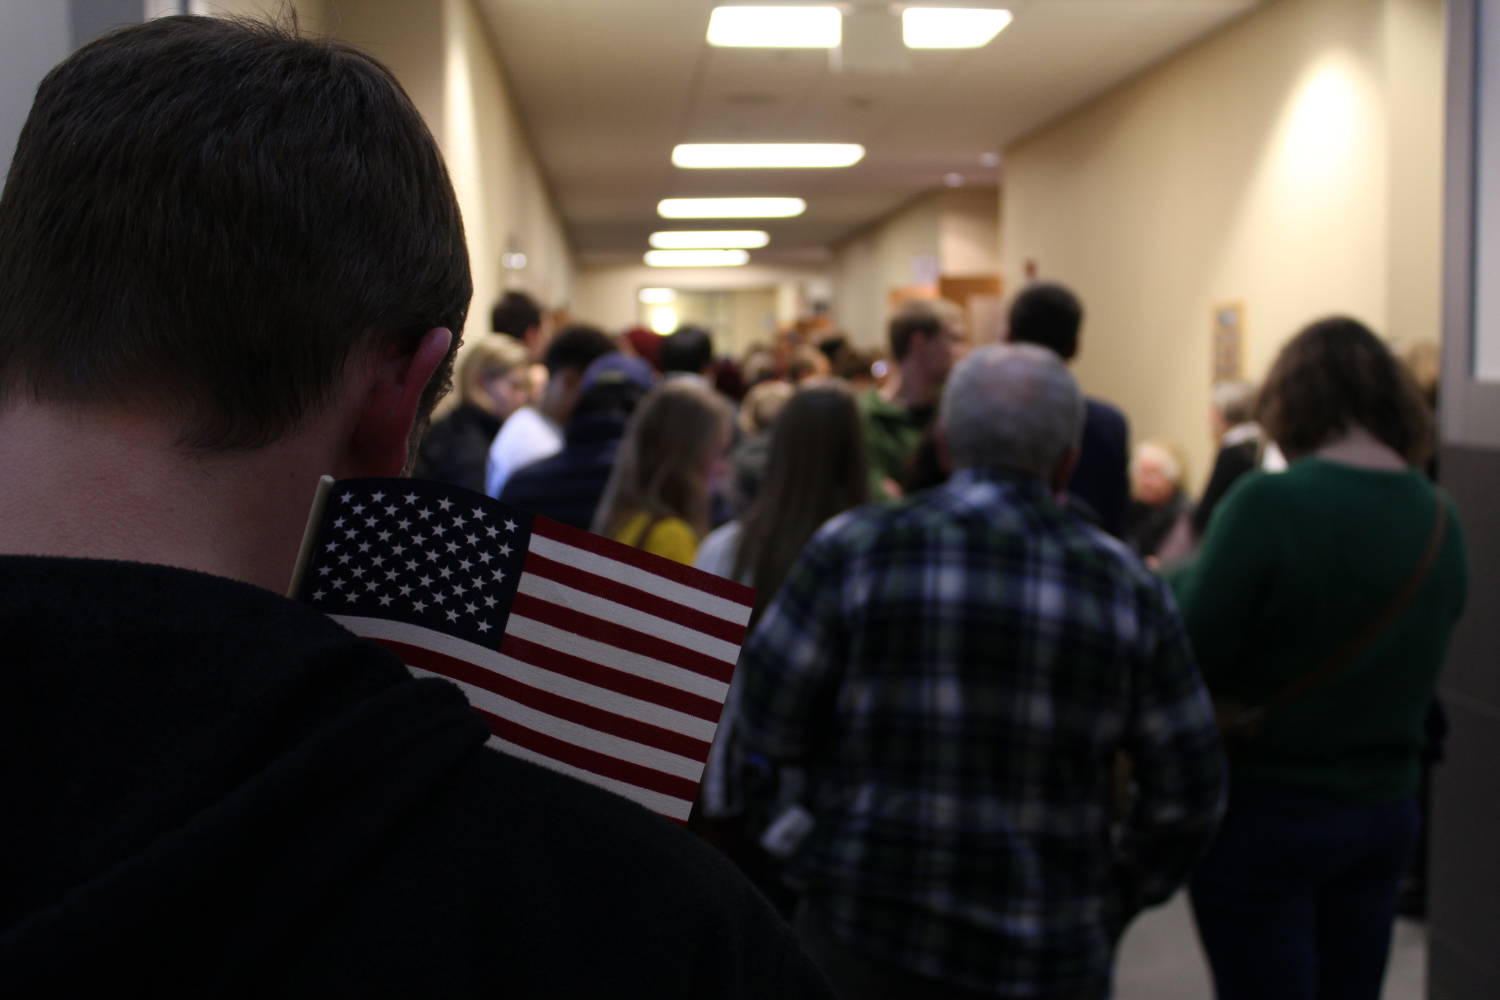 Voters wait patiently for the caucus to start on Monday Feb. 1, 2016. Many supporters come out to Iowa City Public Library.